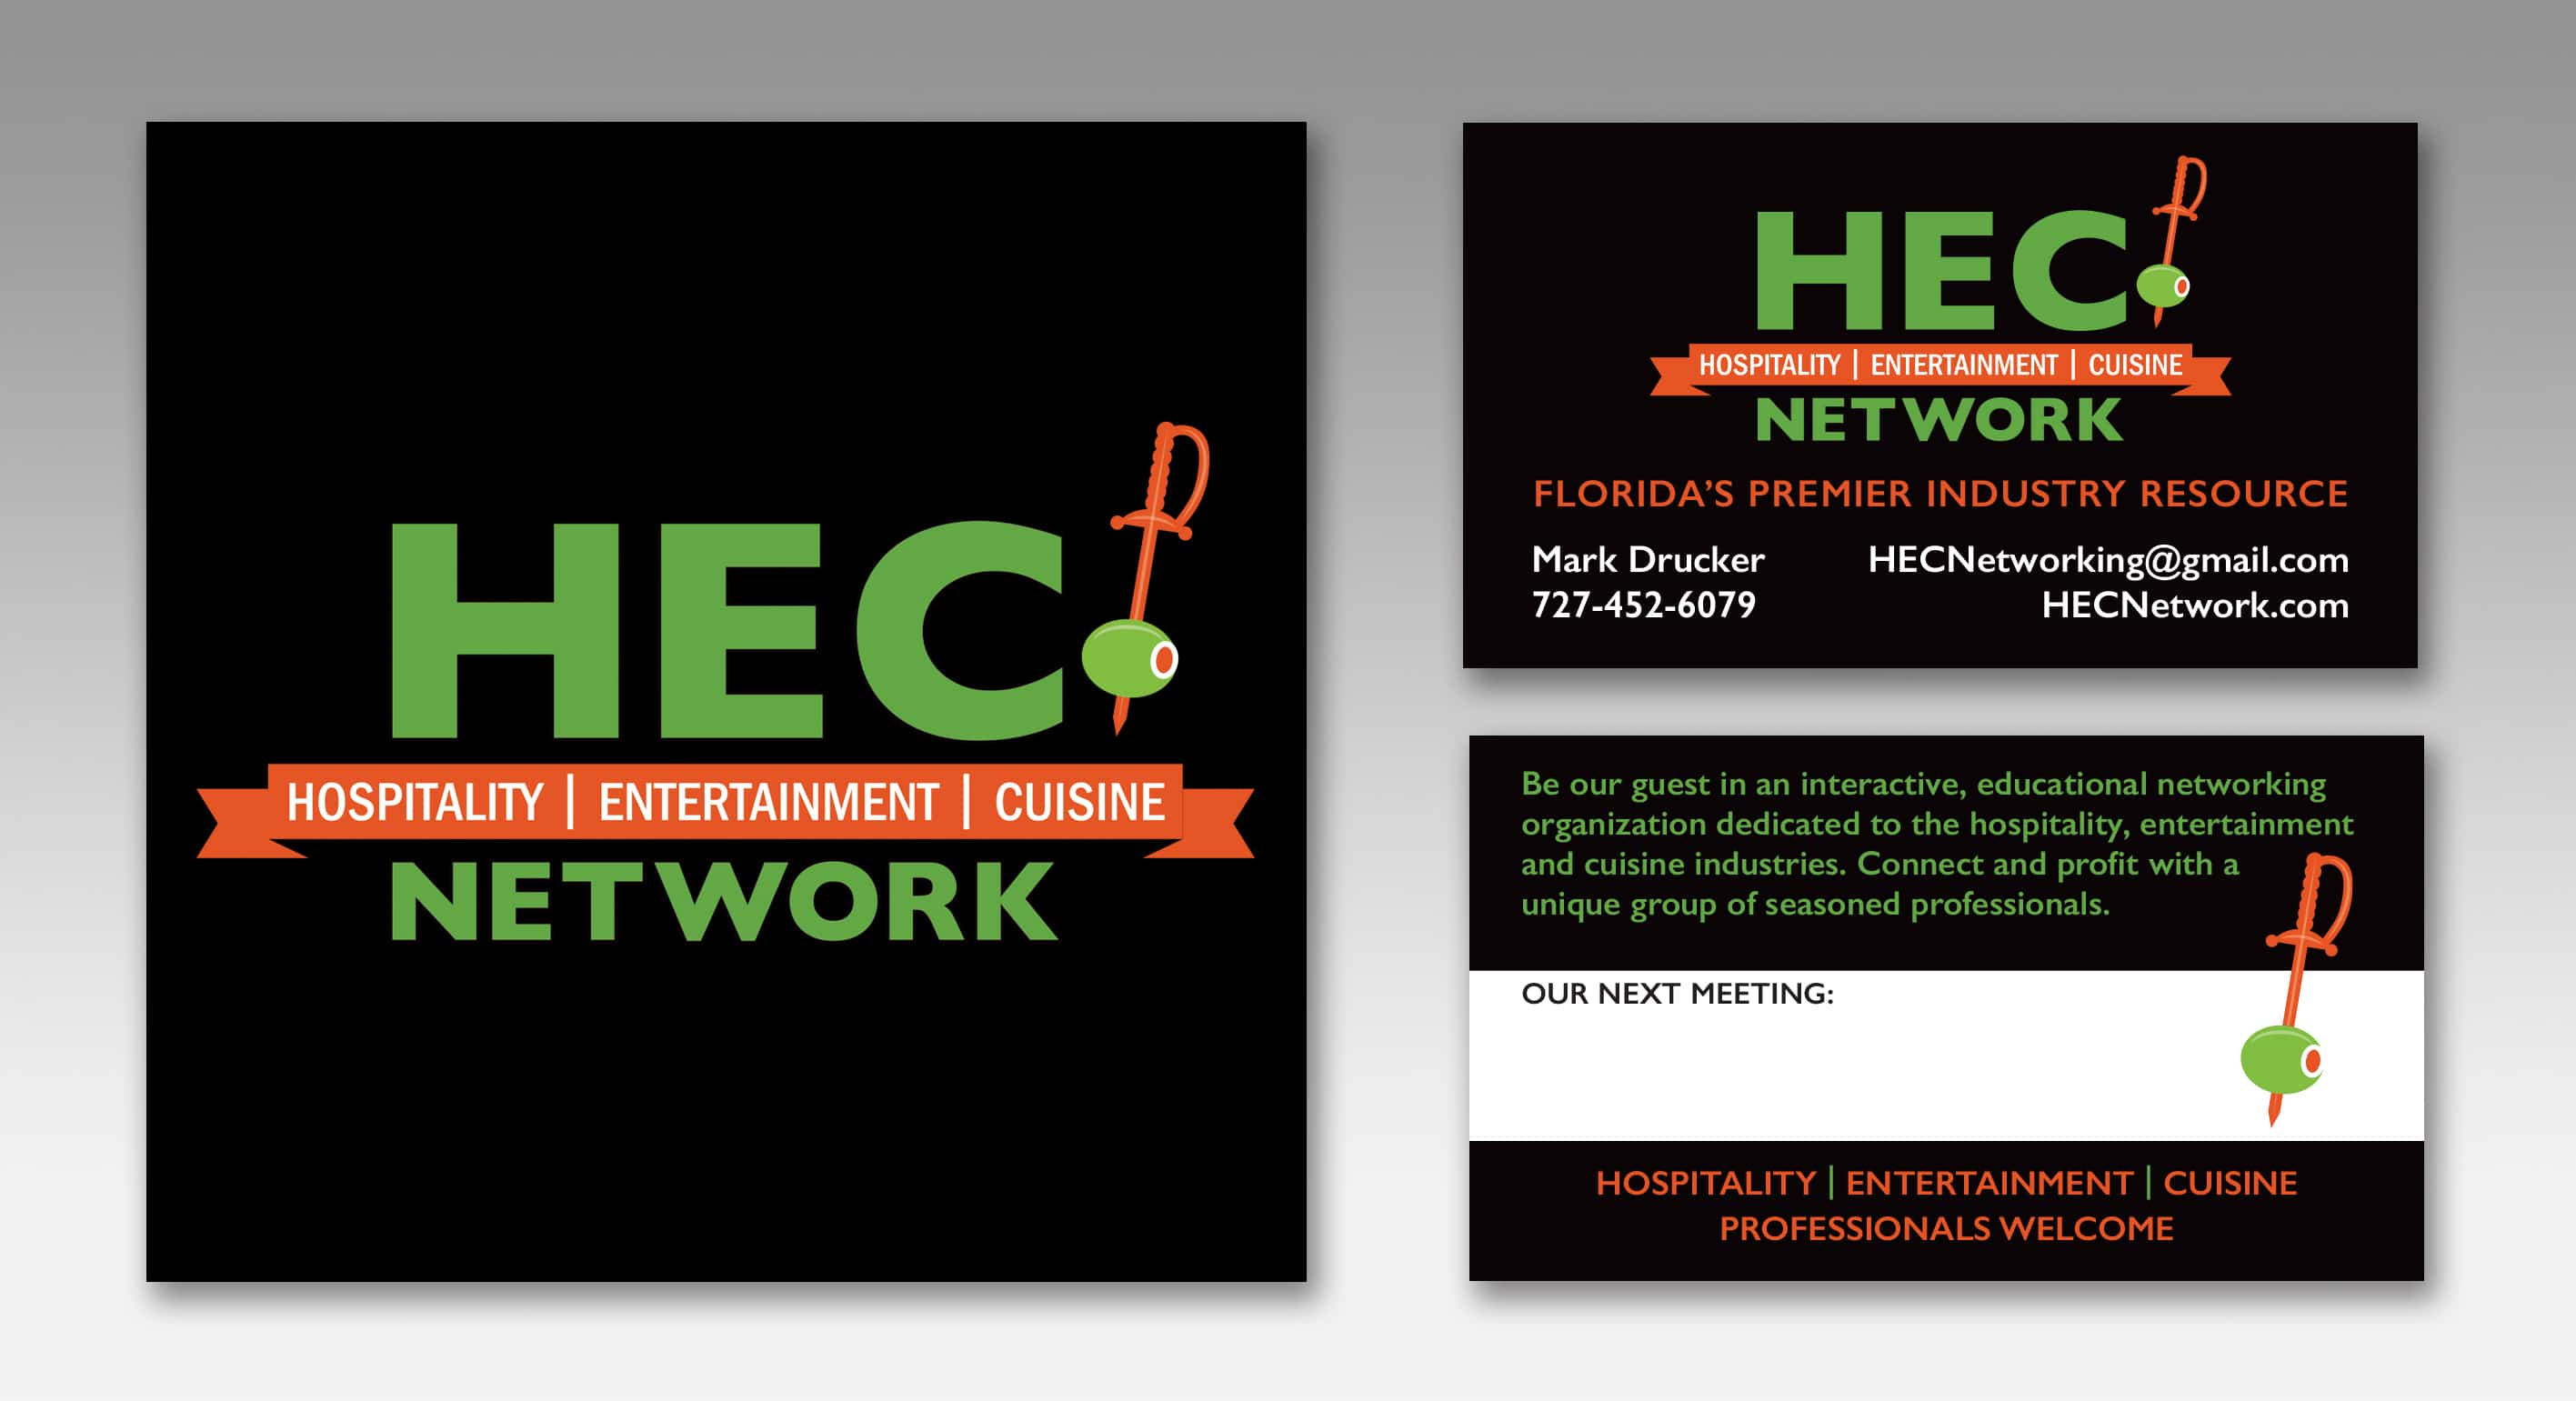 HEC Network (Hospitality, Entertainment and Cuisine)